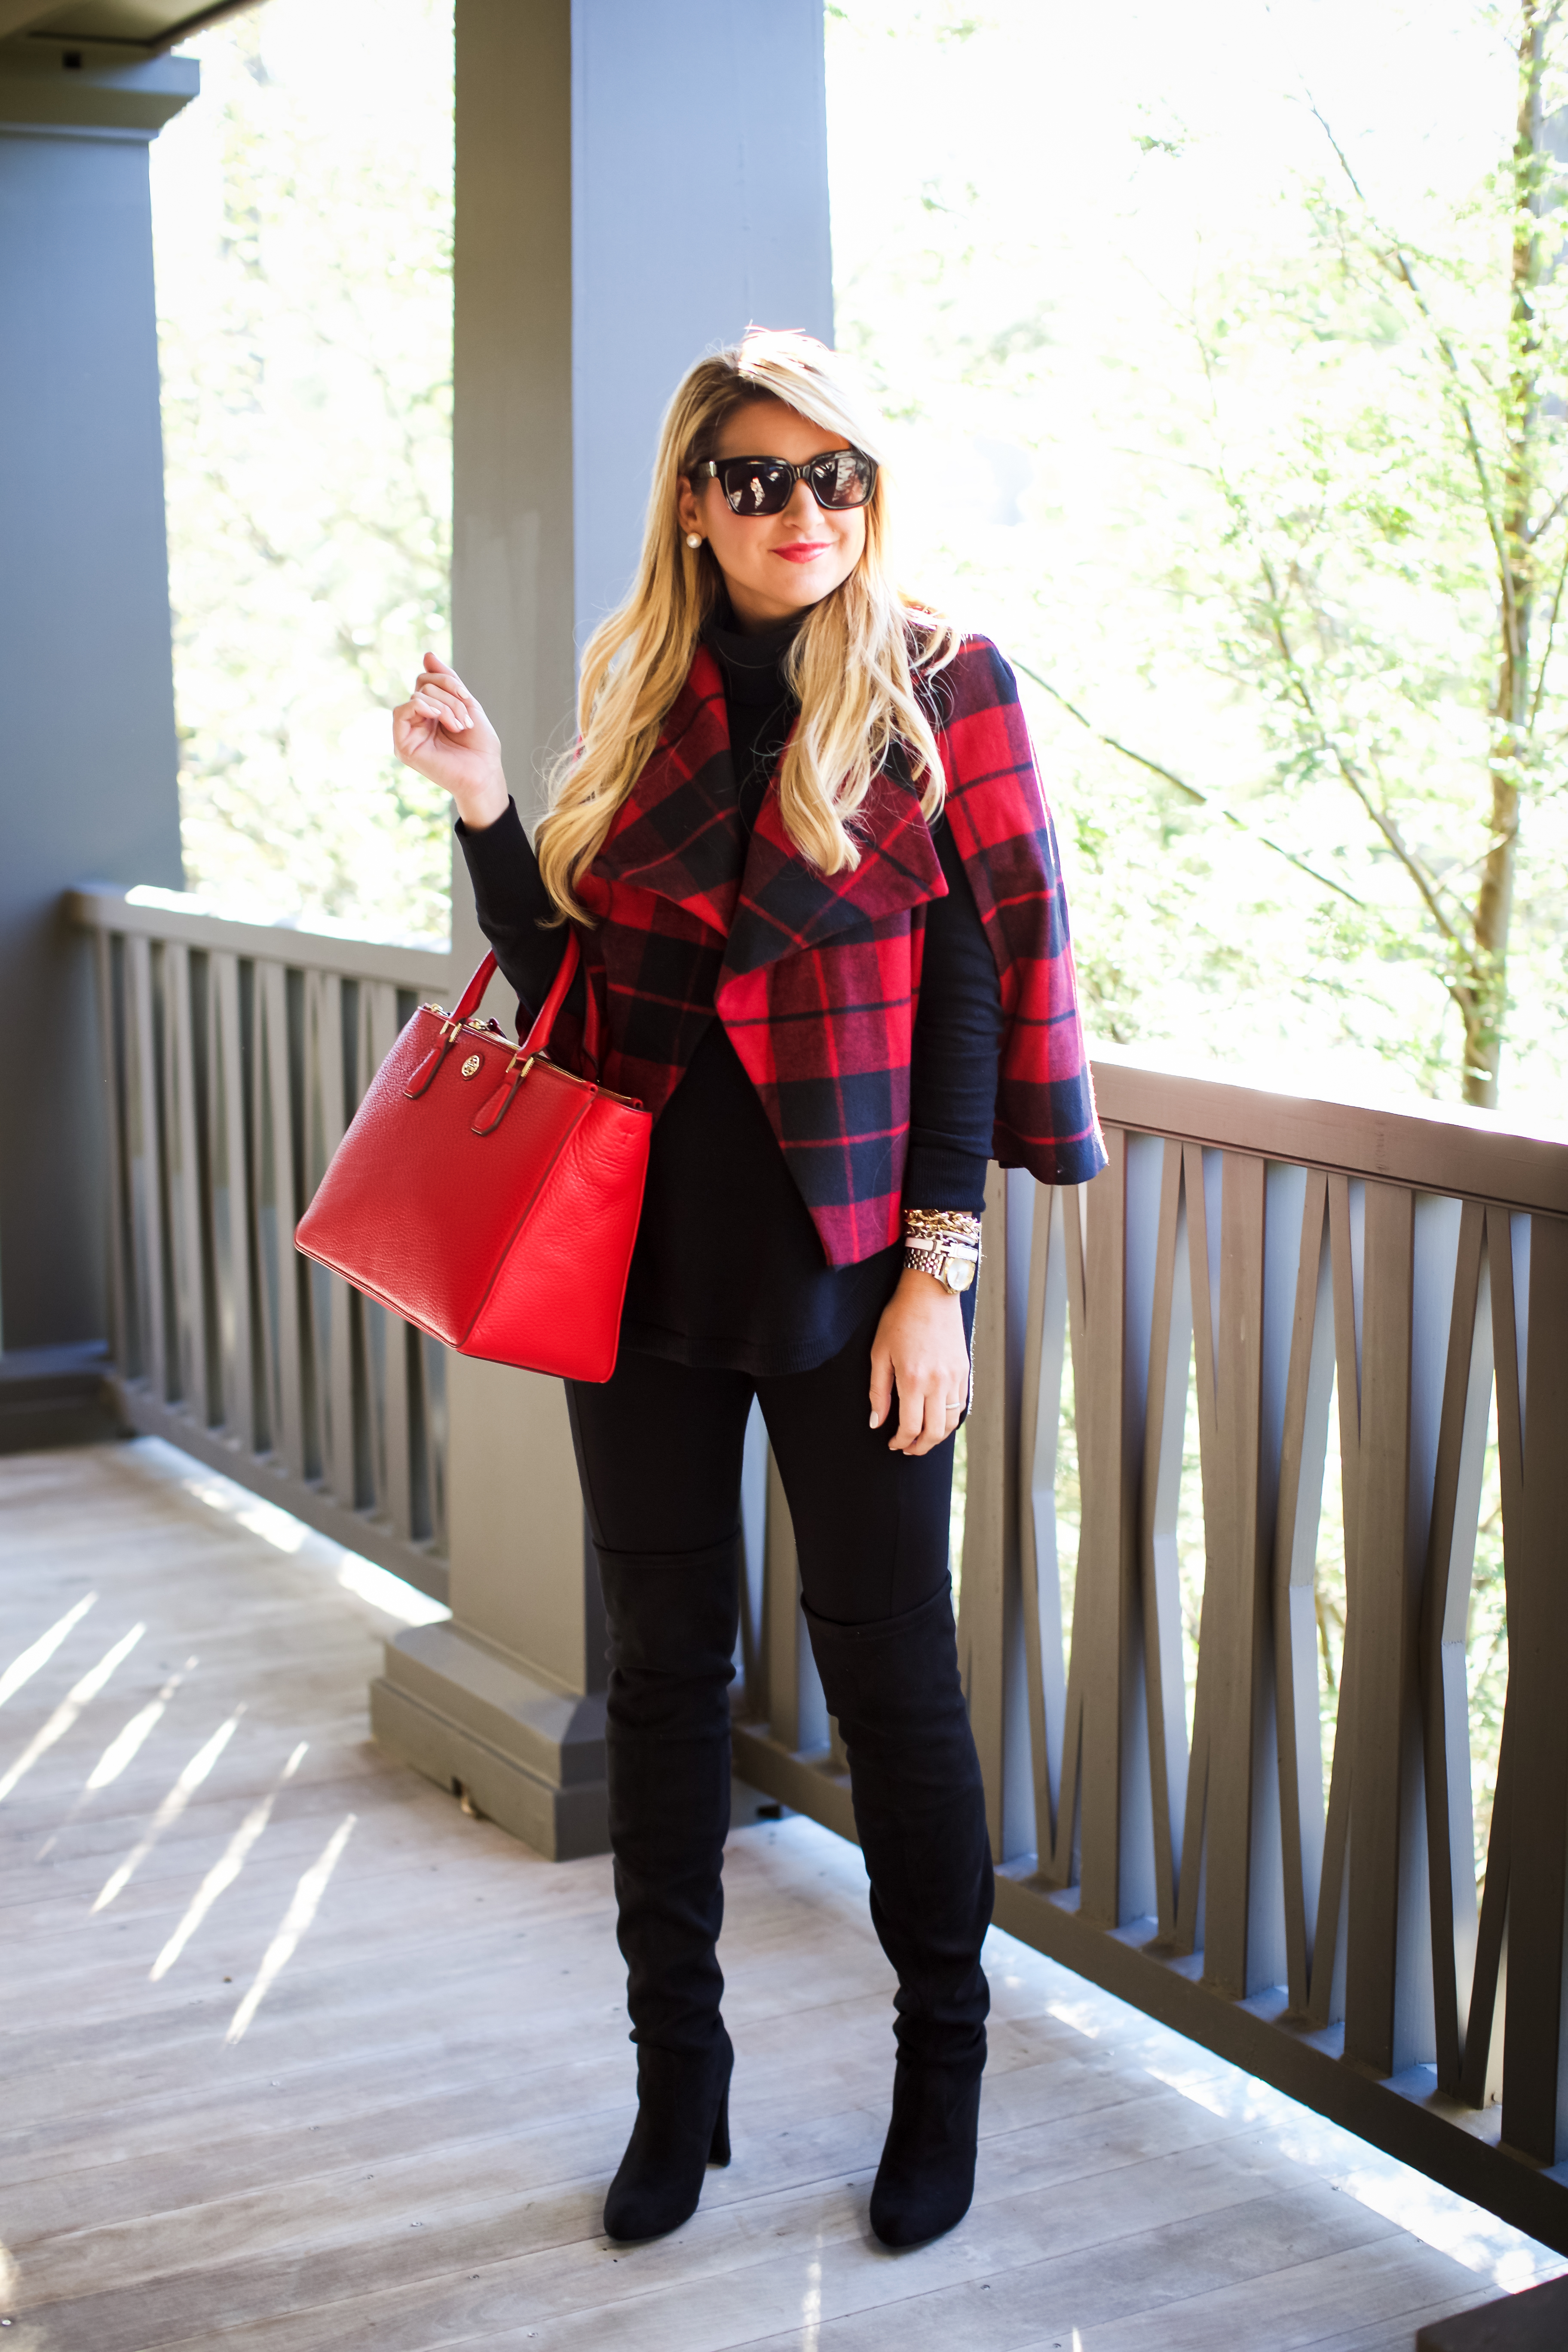 Outfit Buffalo Plaid Jacket Shop Dandy A Florida